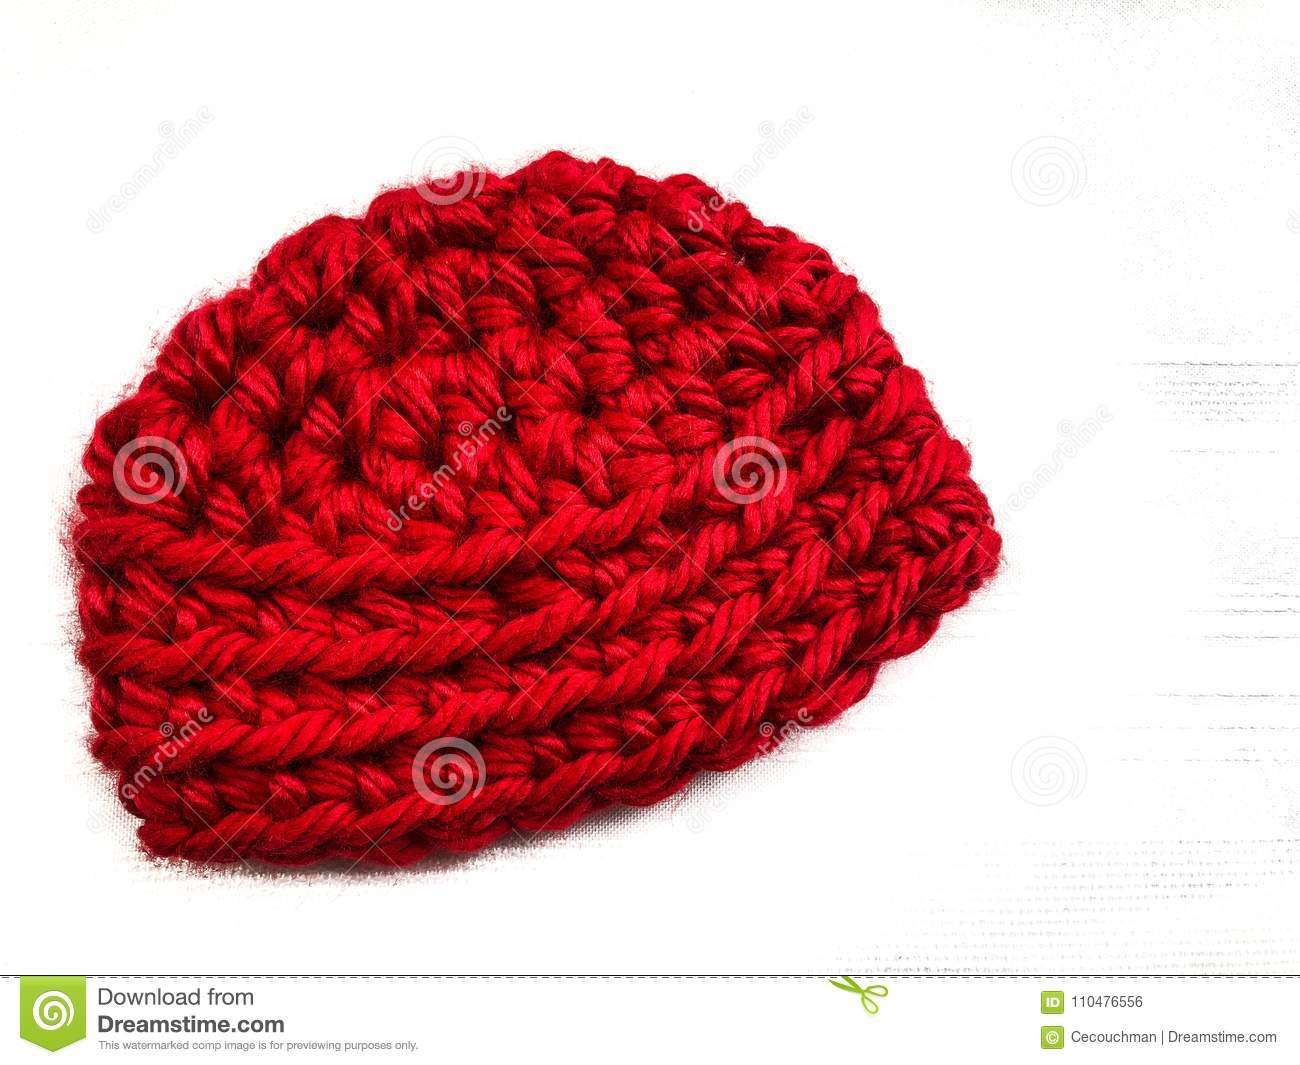 e8c4dfee Red Crocheted Baby Cap In Bulky Yarn Stock Photo - Image of bright ...